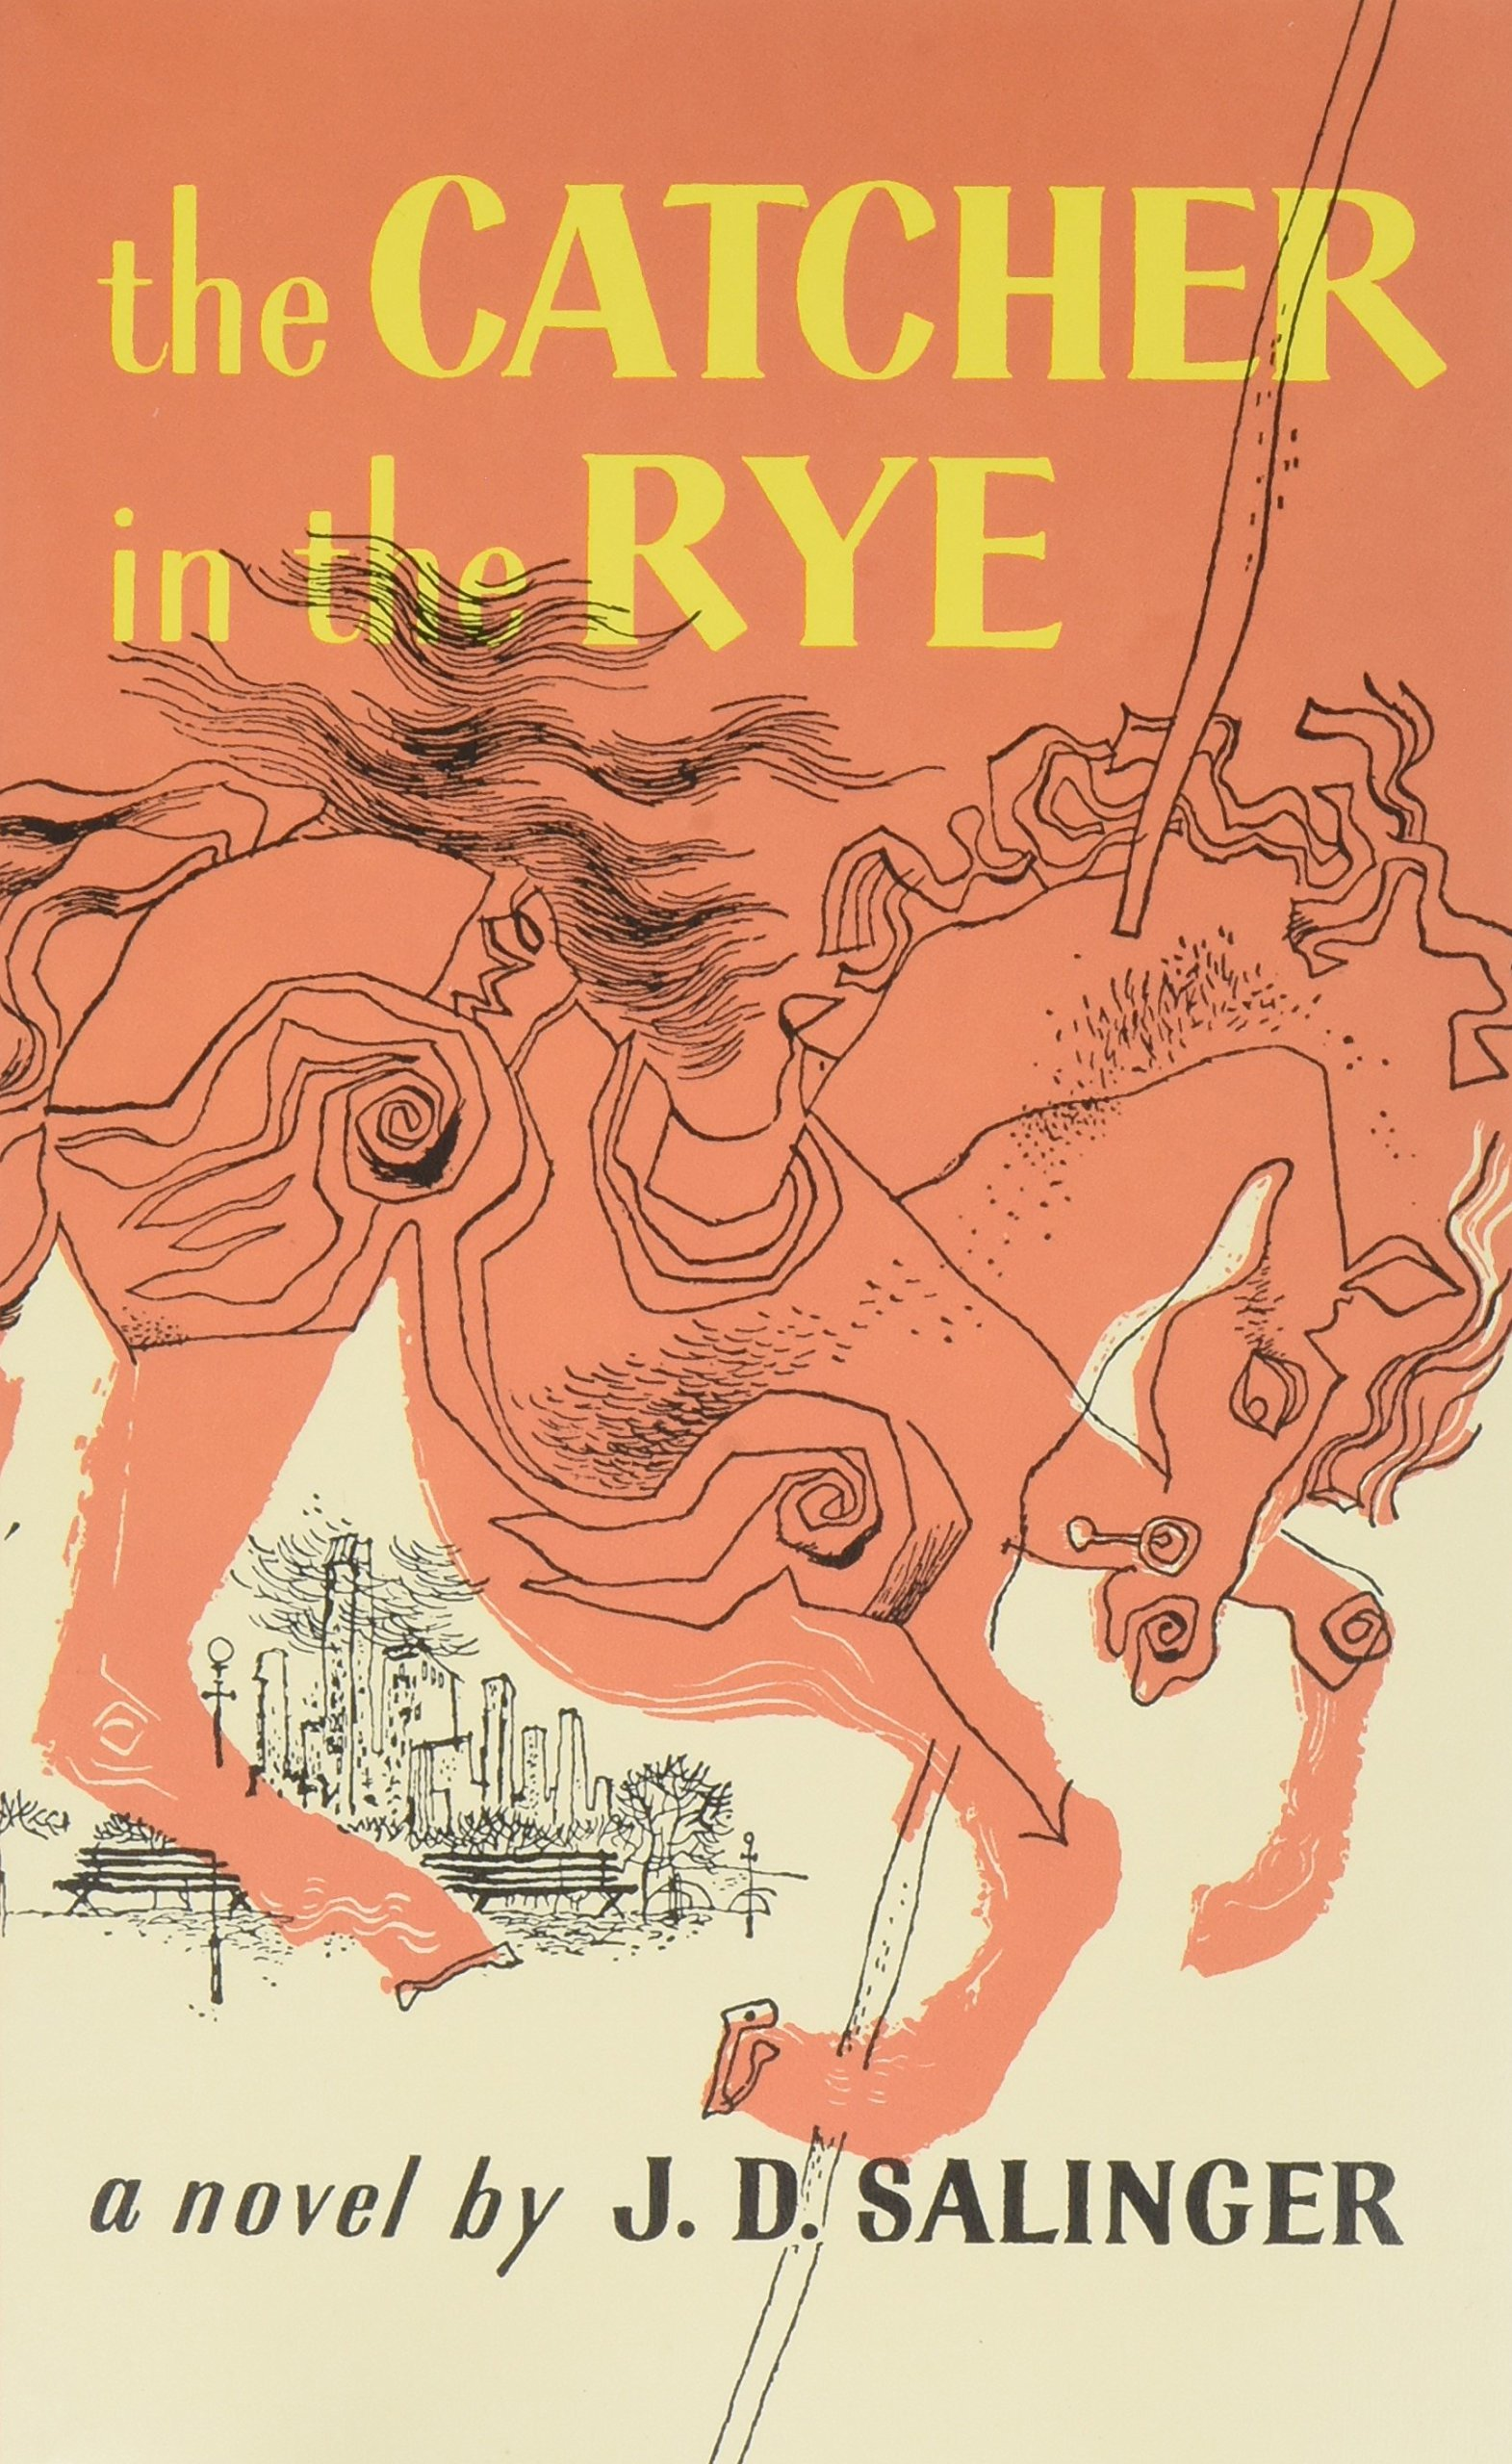 Buy The Catcher In The Rye Book Online At Low Prices In India  The Catcher  In The Rye Reviews & Ratings  Amazon